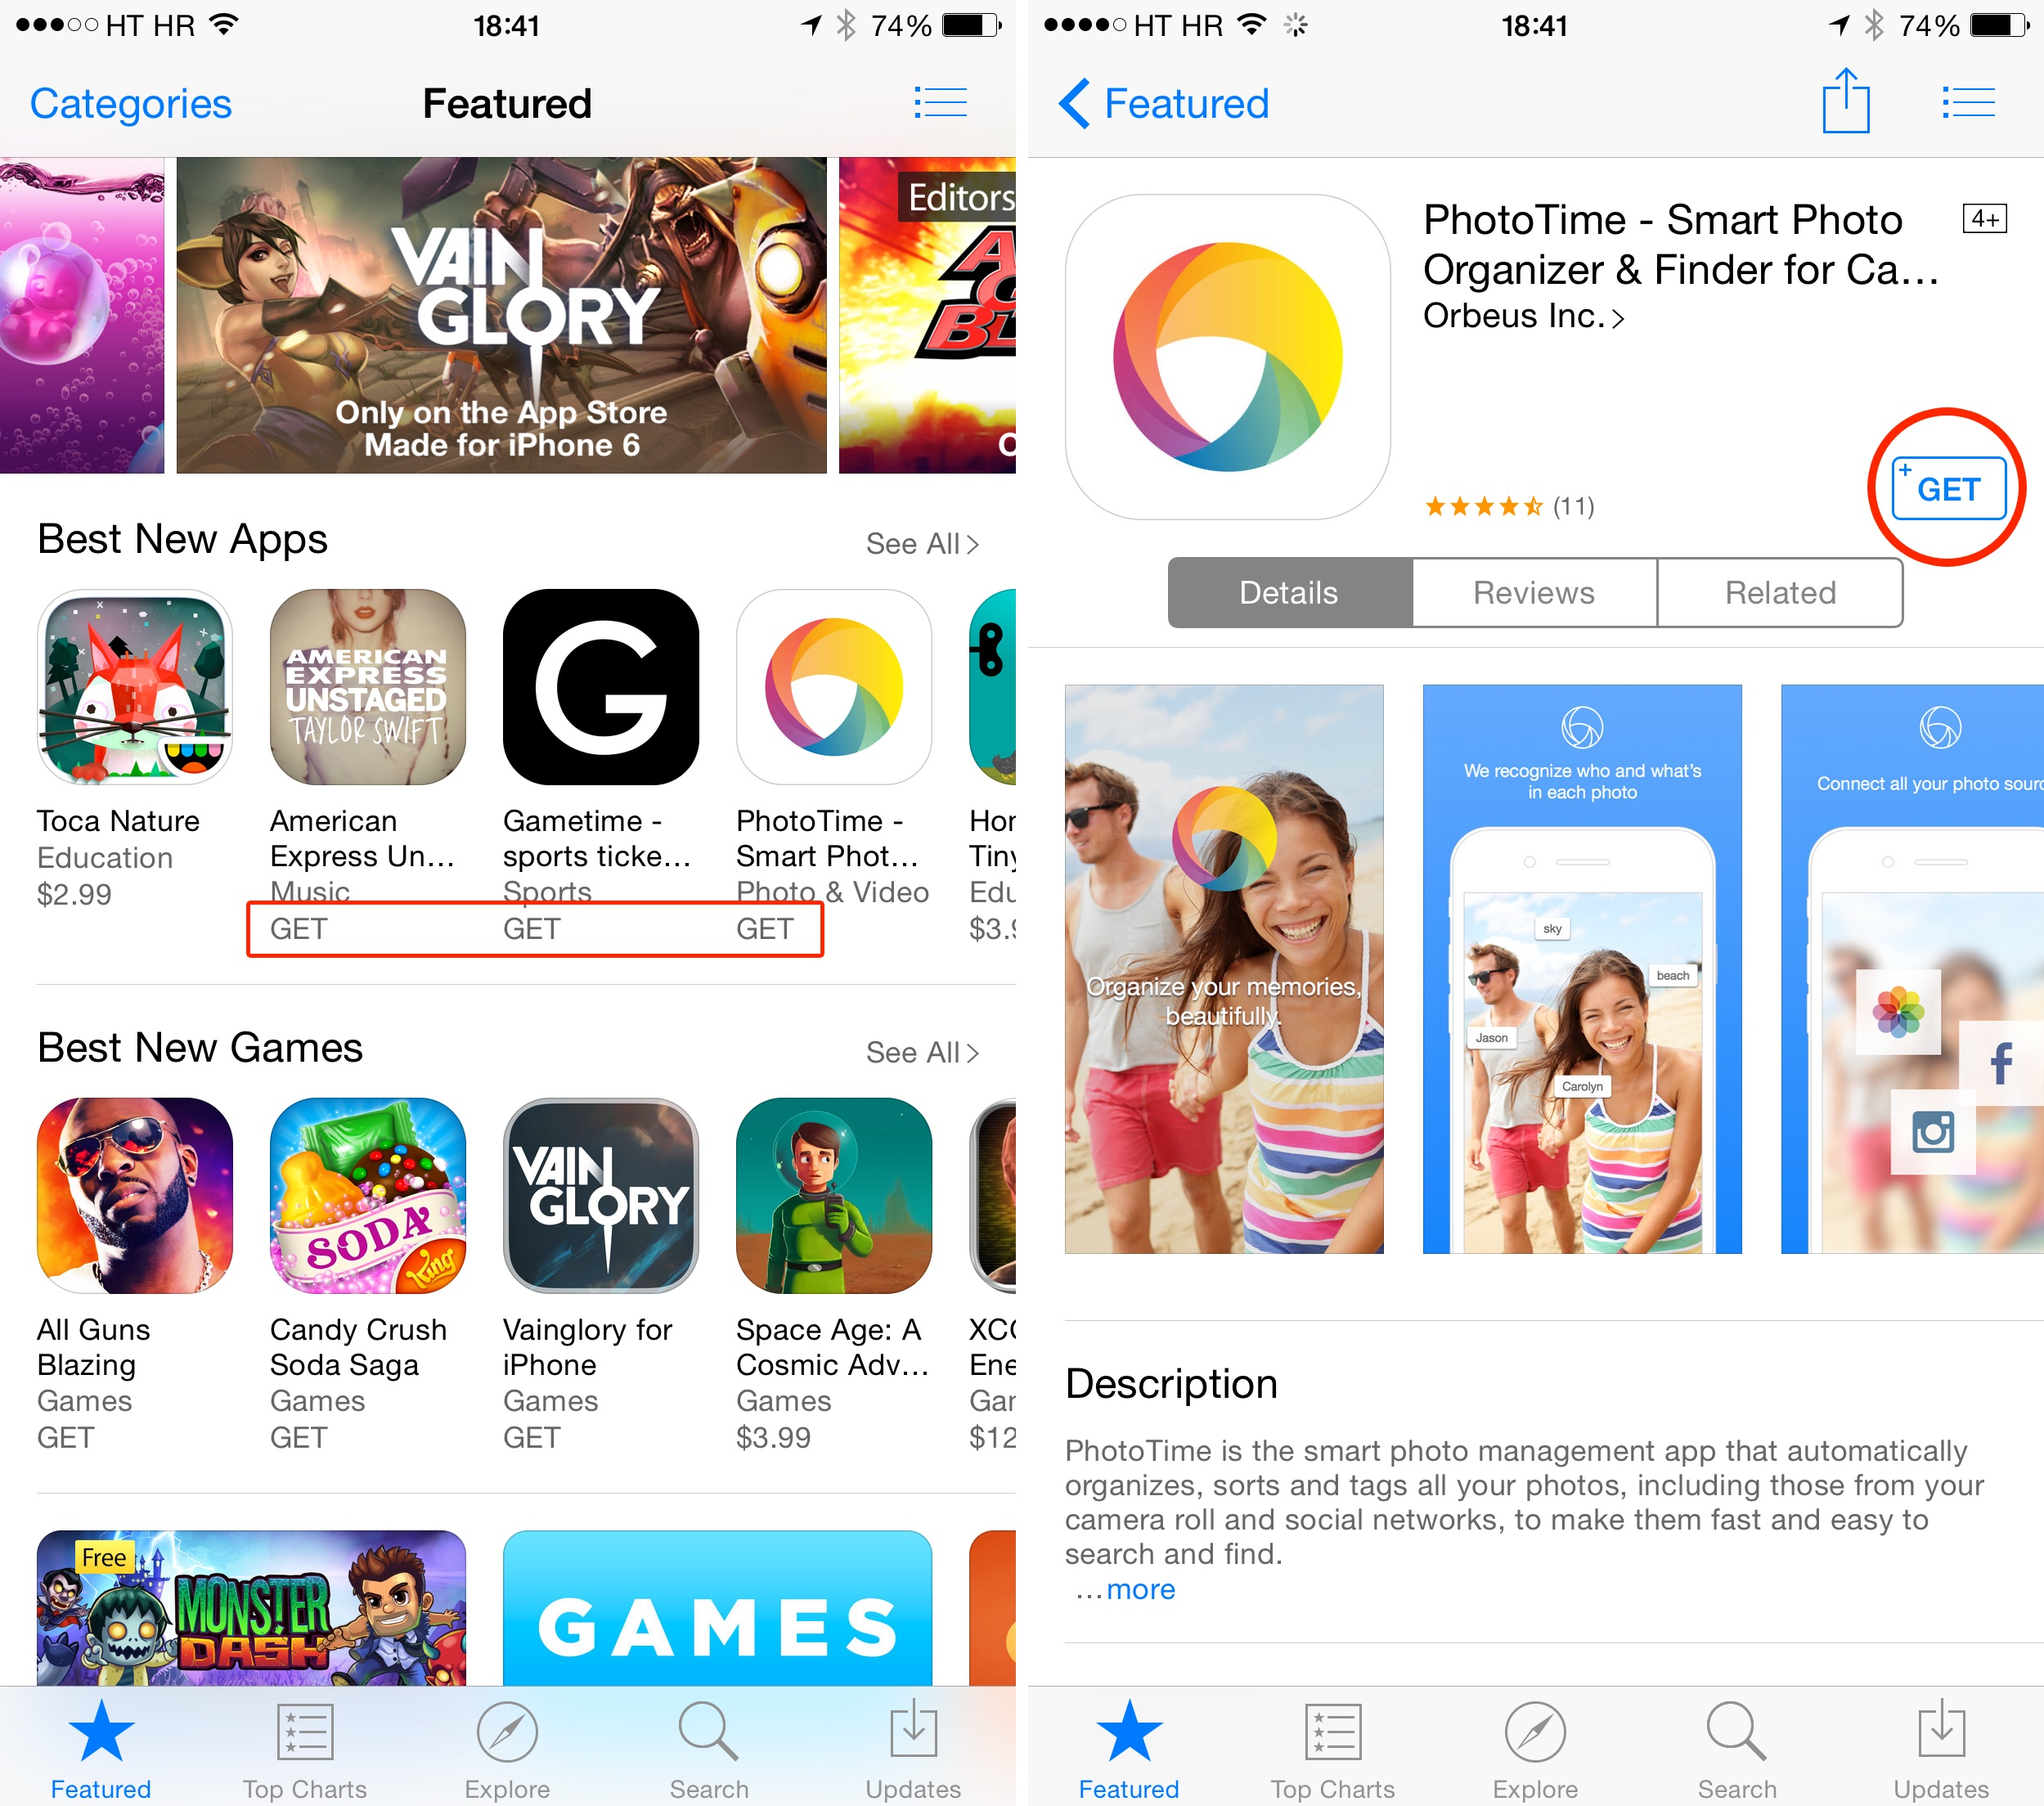 App Store (Get button)